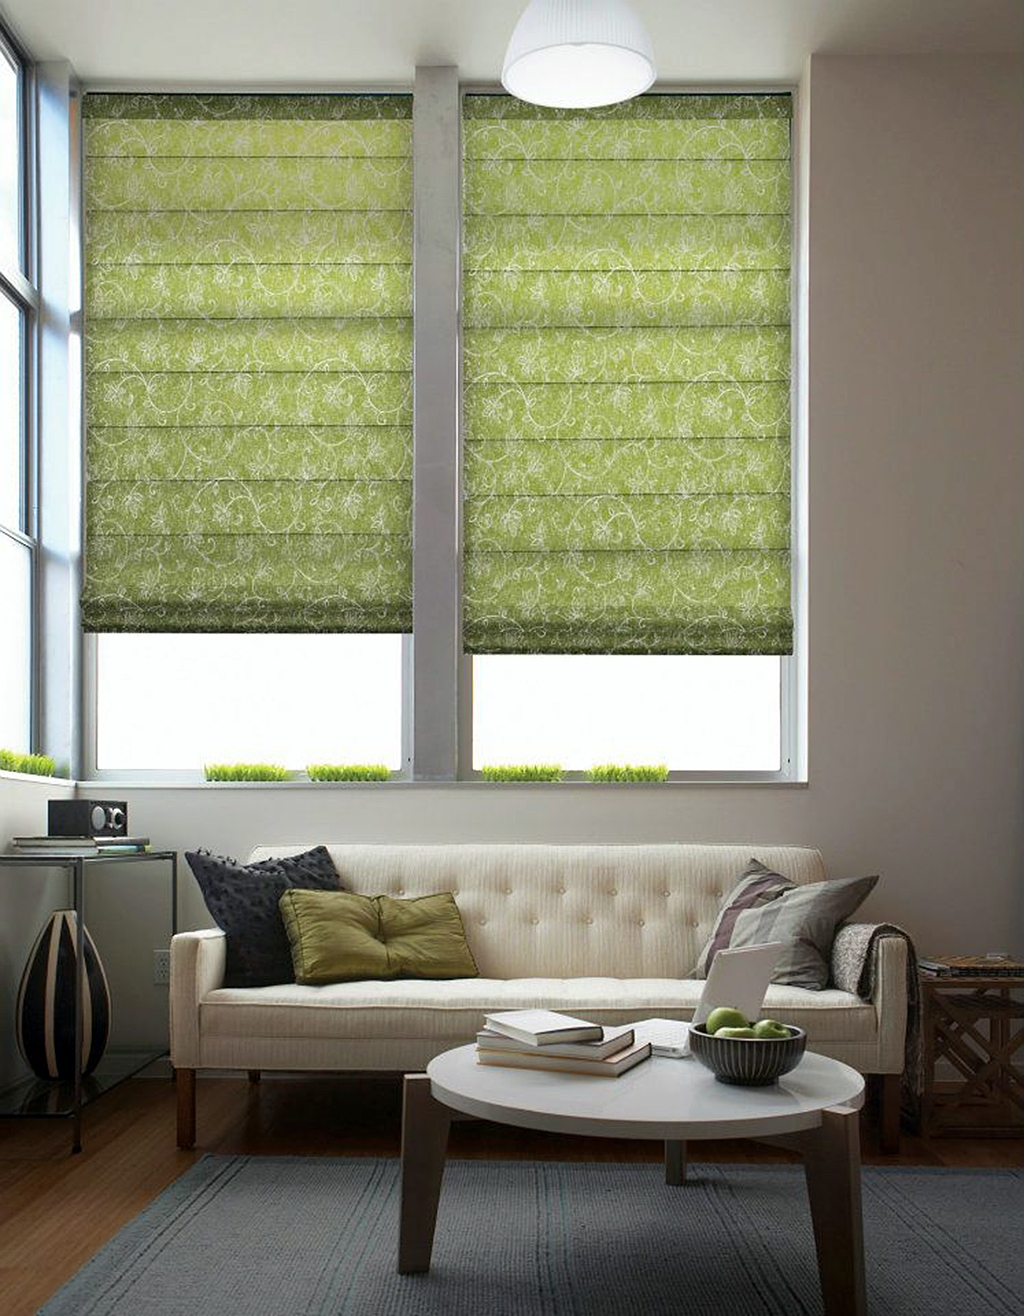 Roman Blinds Dl Blinds Regarding Green Roller Blinds (Image 14 of 15)